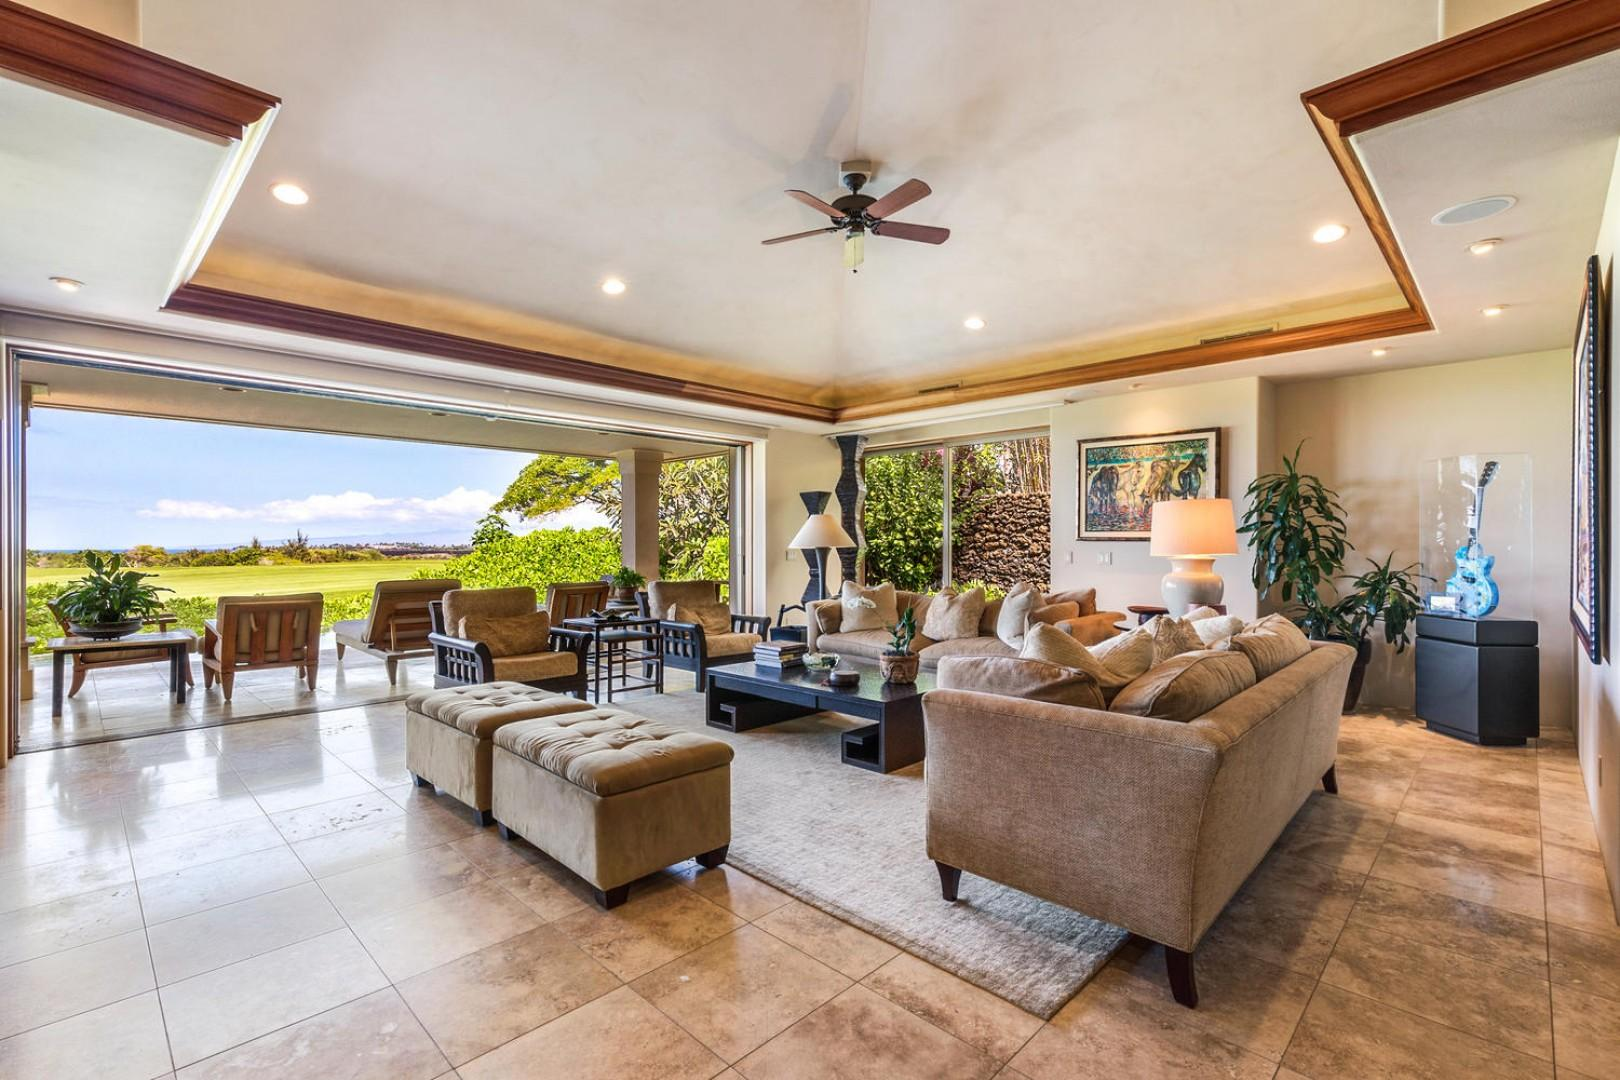 Living area with valance ceilings, recessed lighting, and sliding glass pocket doors to lanai & pool deck.